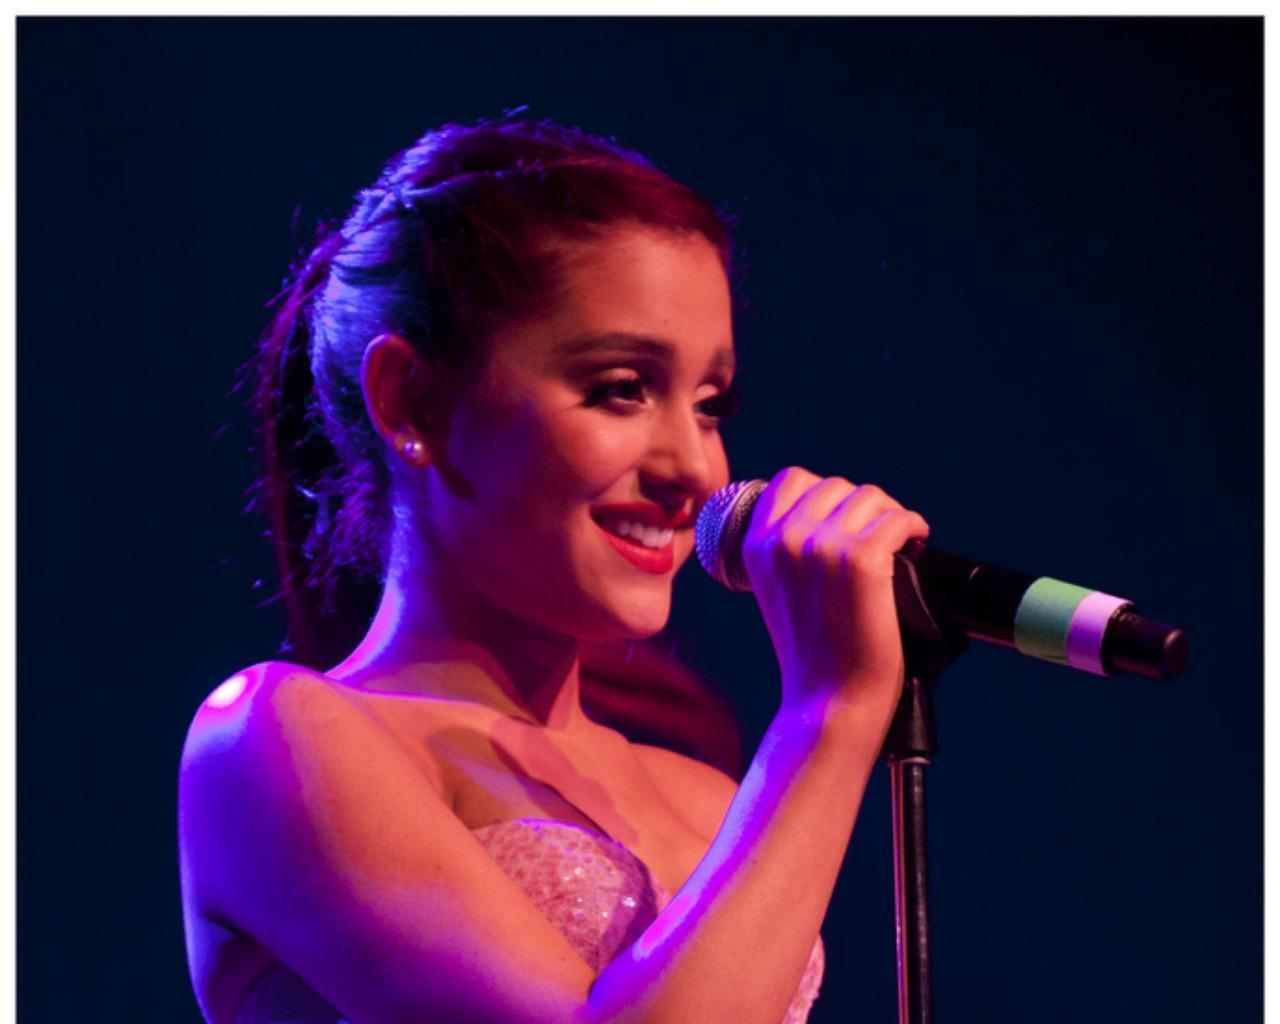 Are you a true Arianna Grande fan?